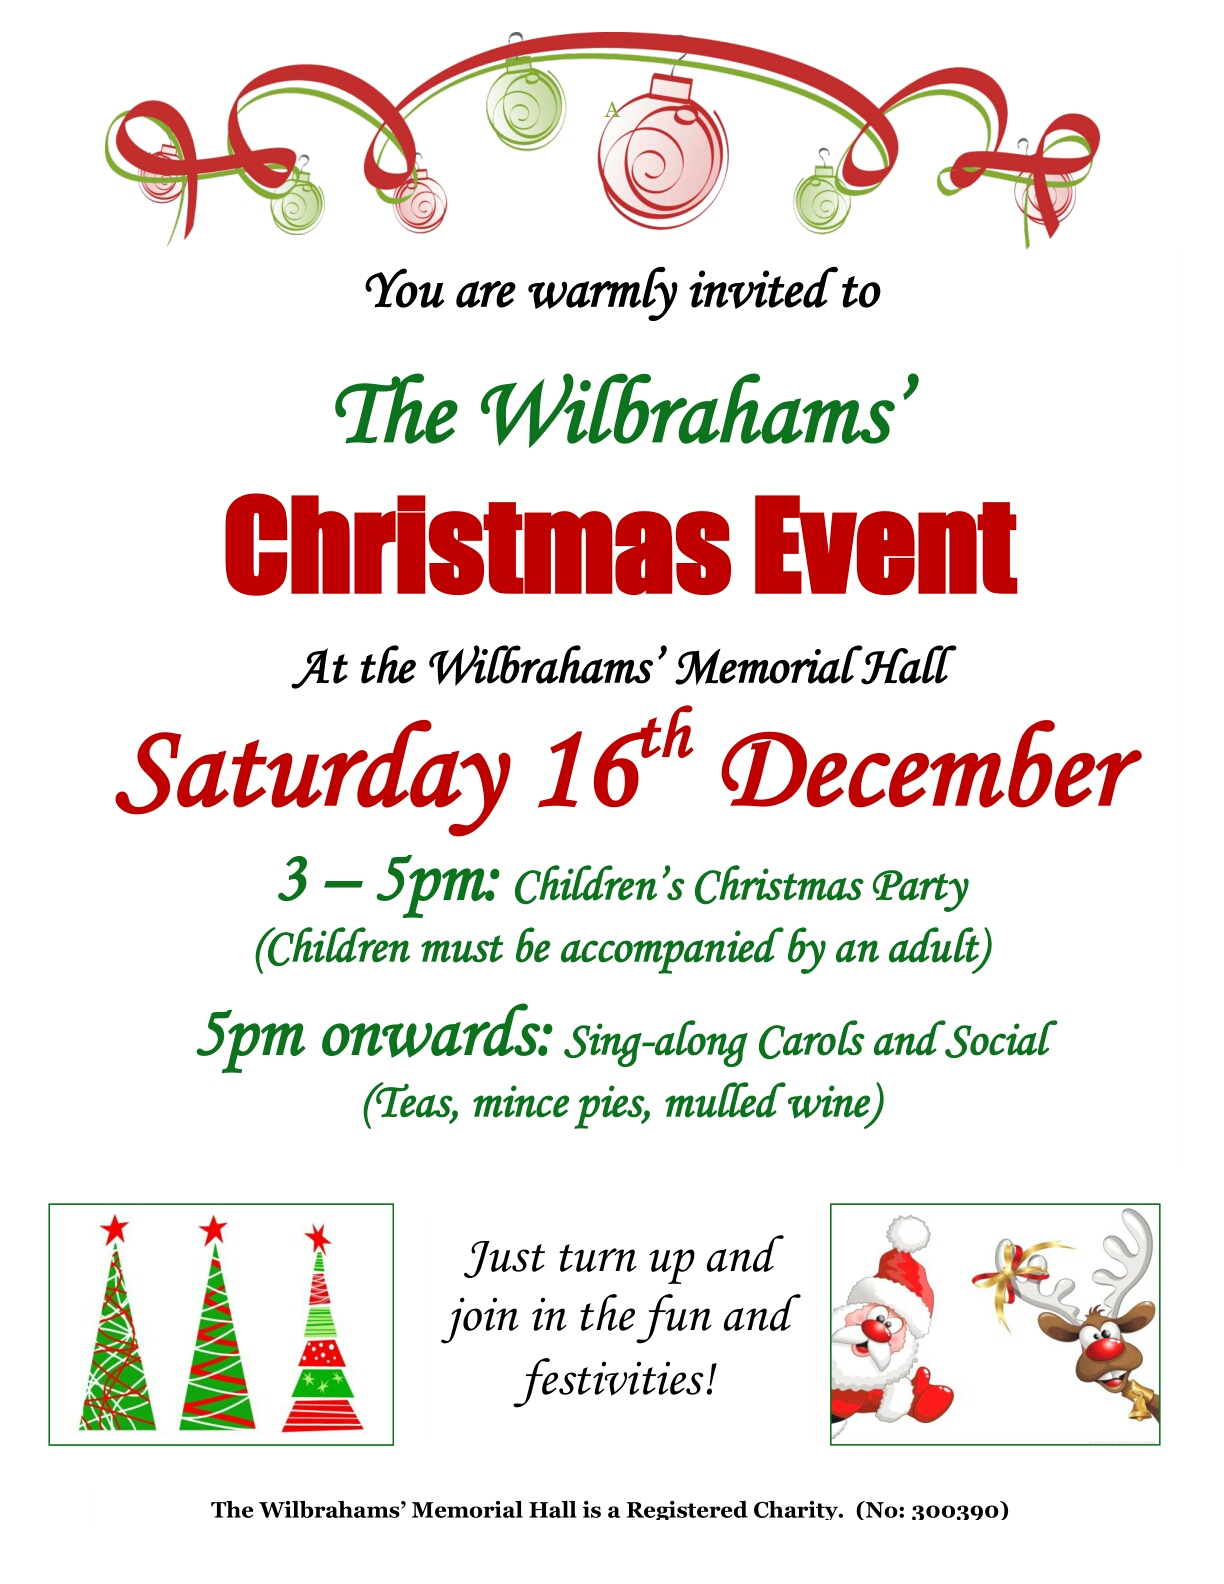 Wilbrahams' Christmas Event:Children's Christmas Party @ Wilbrahams'Memorial Hall